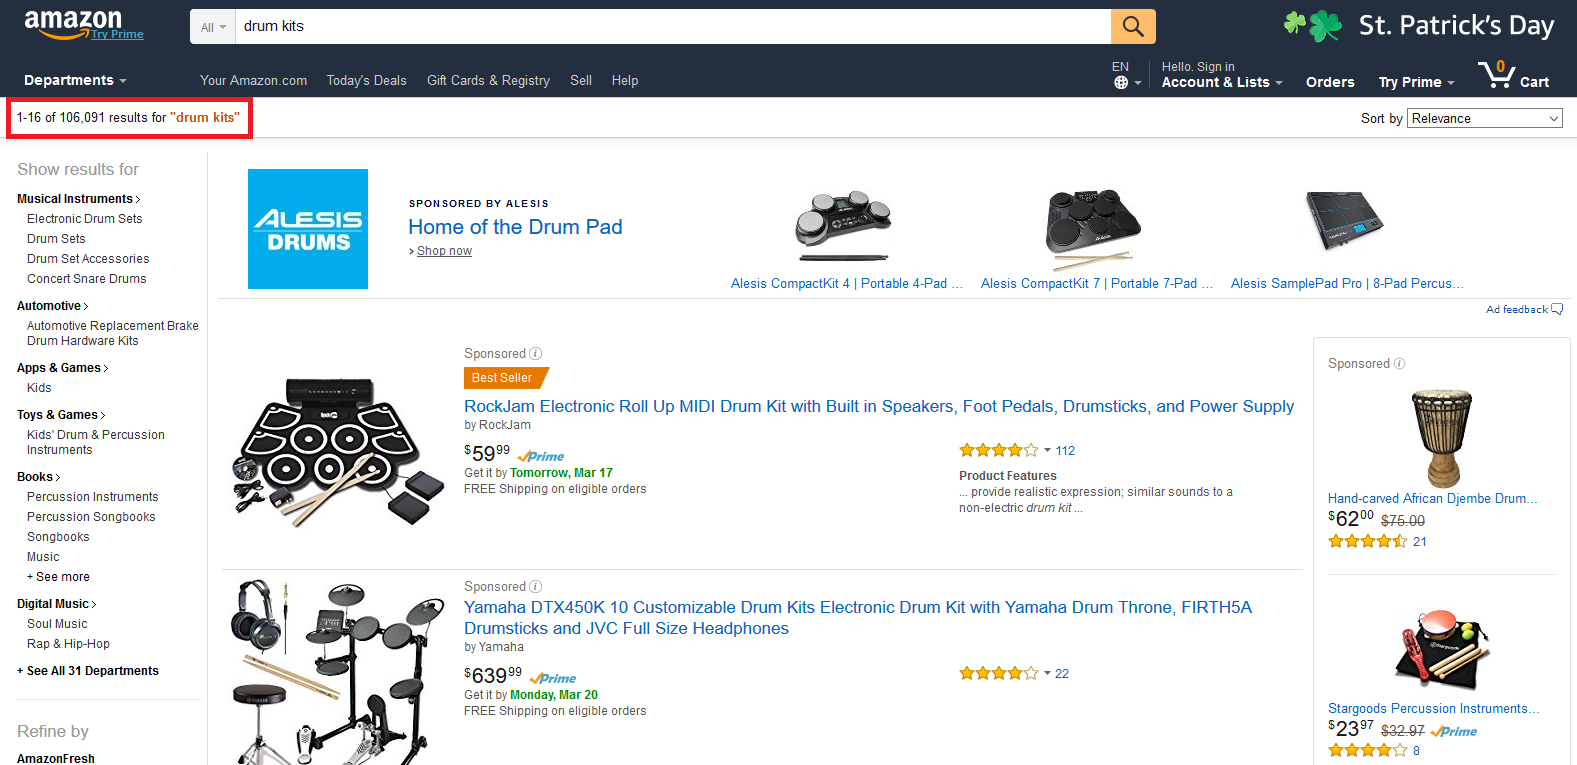 How To Increase Sales On Amazon With 5 Concrete Actions